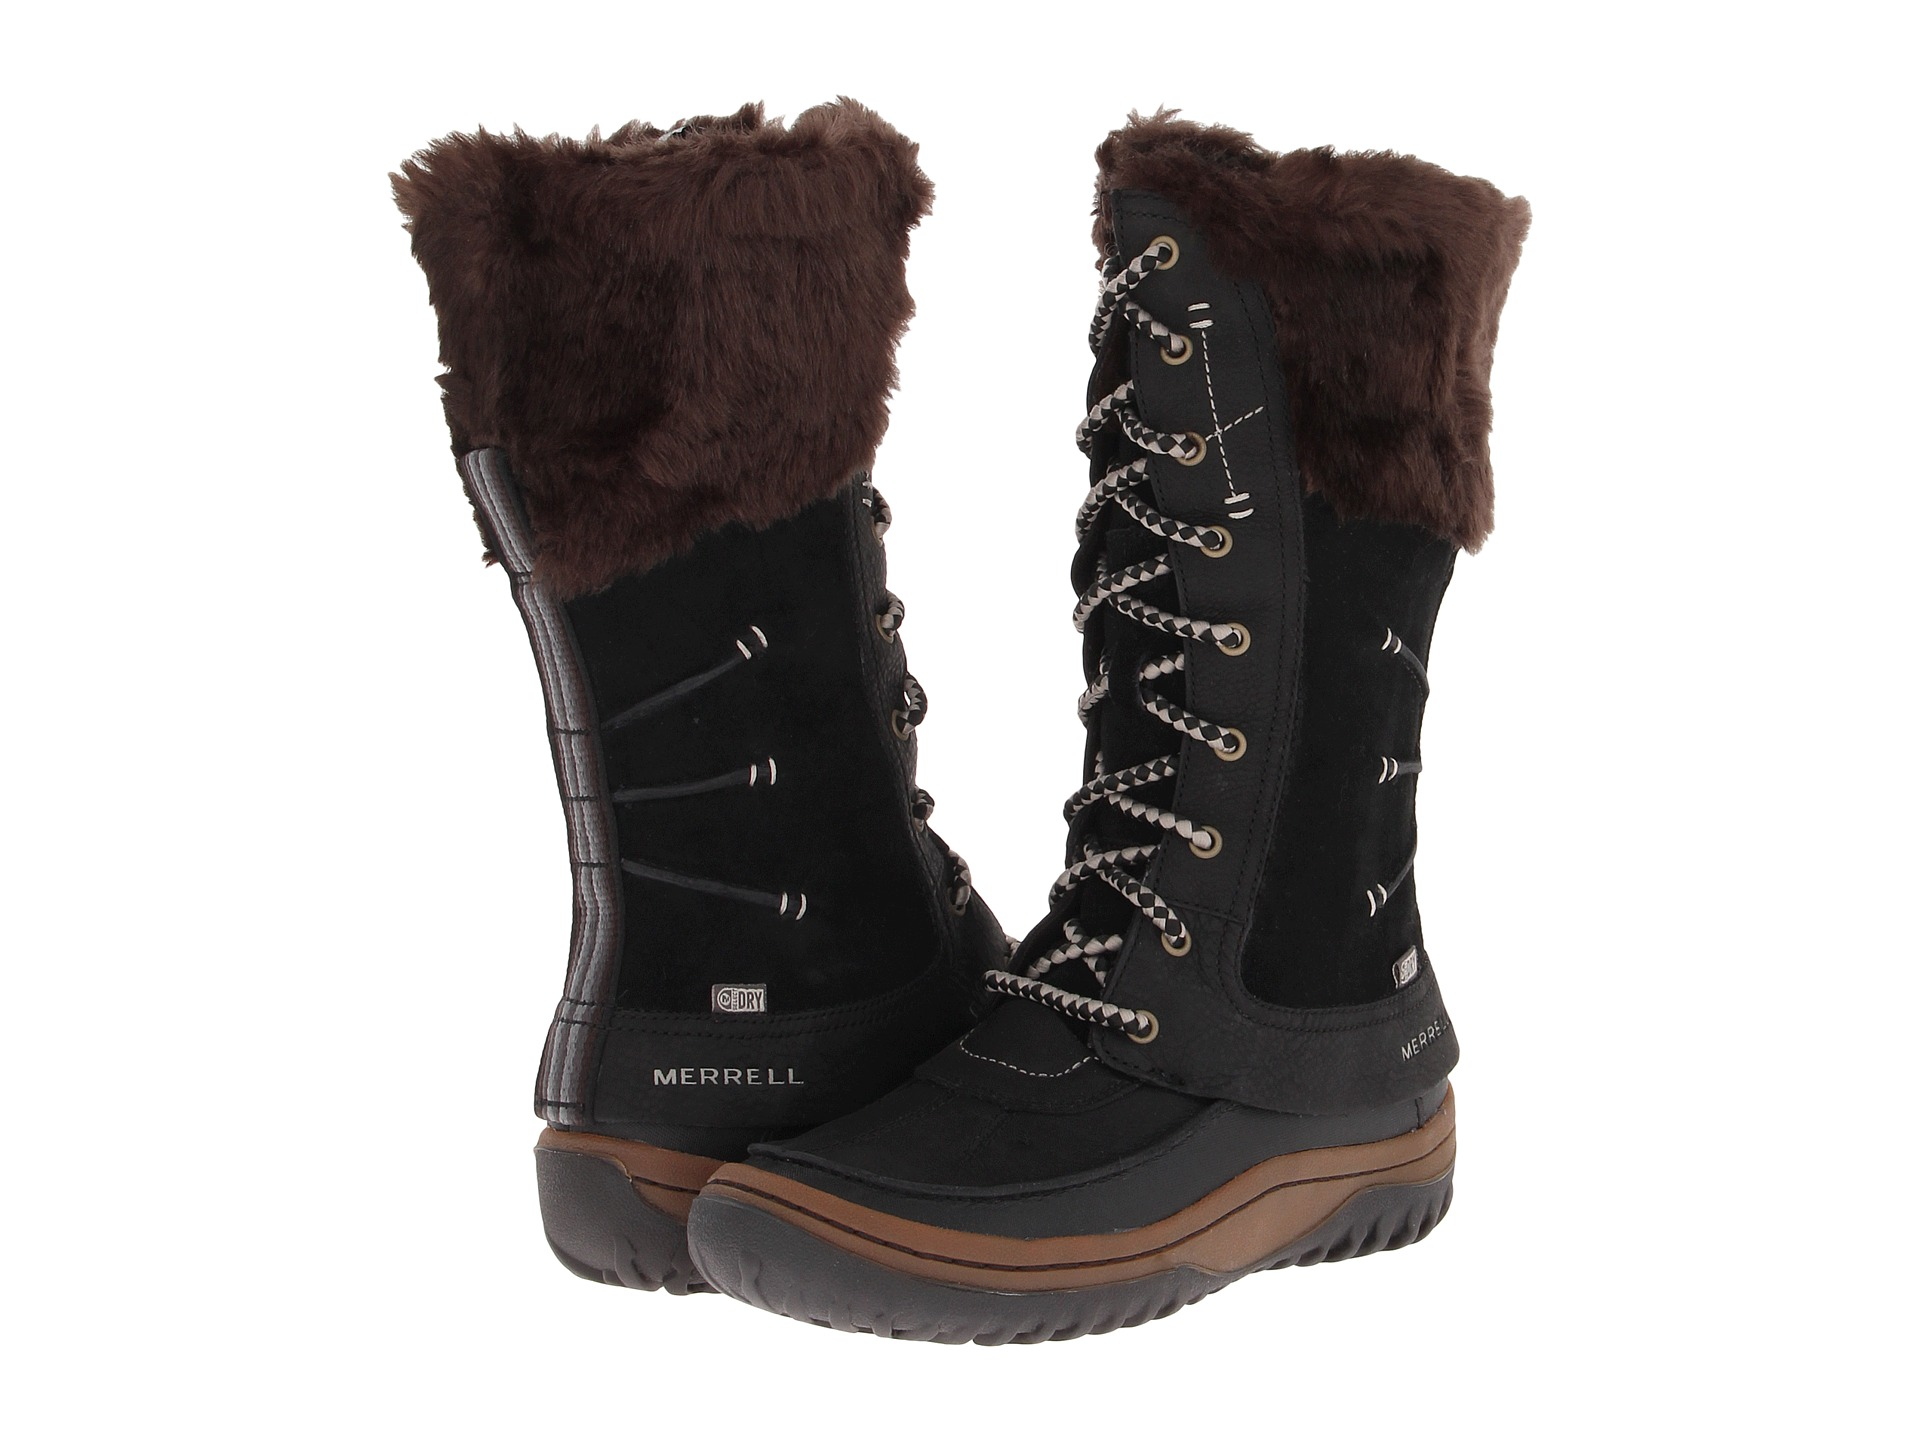 Merrell Winter Boots For Men Images Ideas About Mens